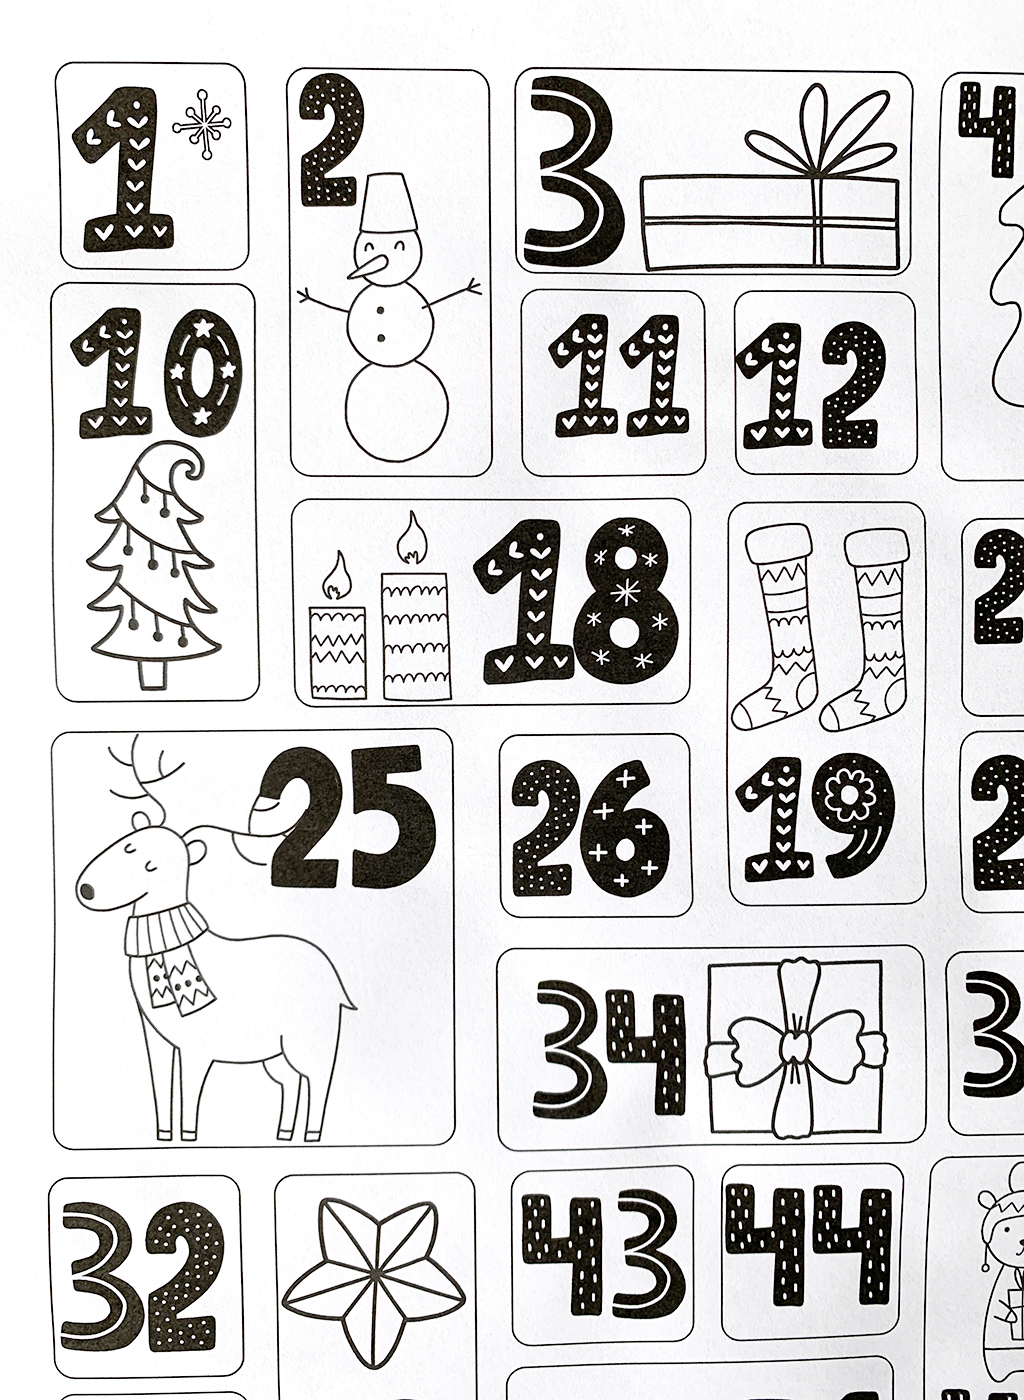 100 acts of kindness coloring countdown black and white print out.